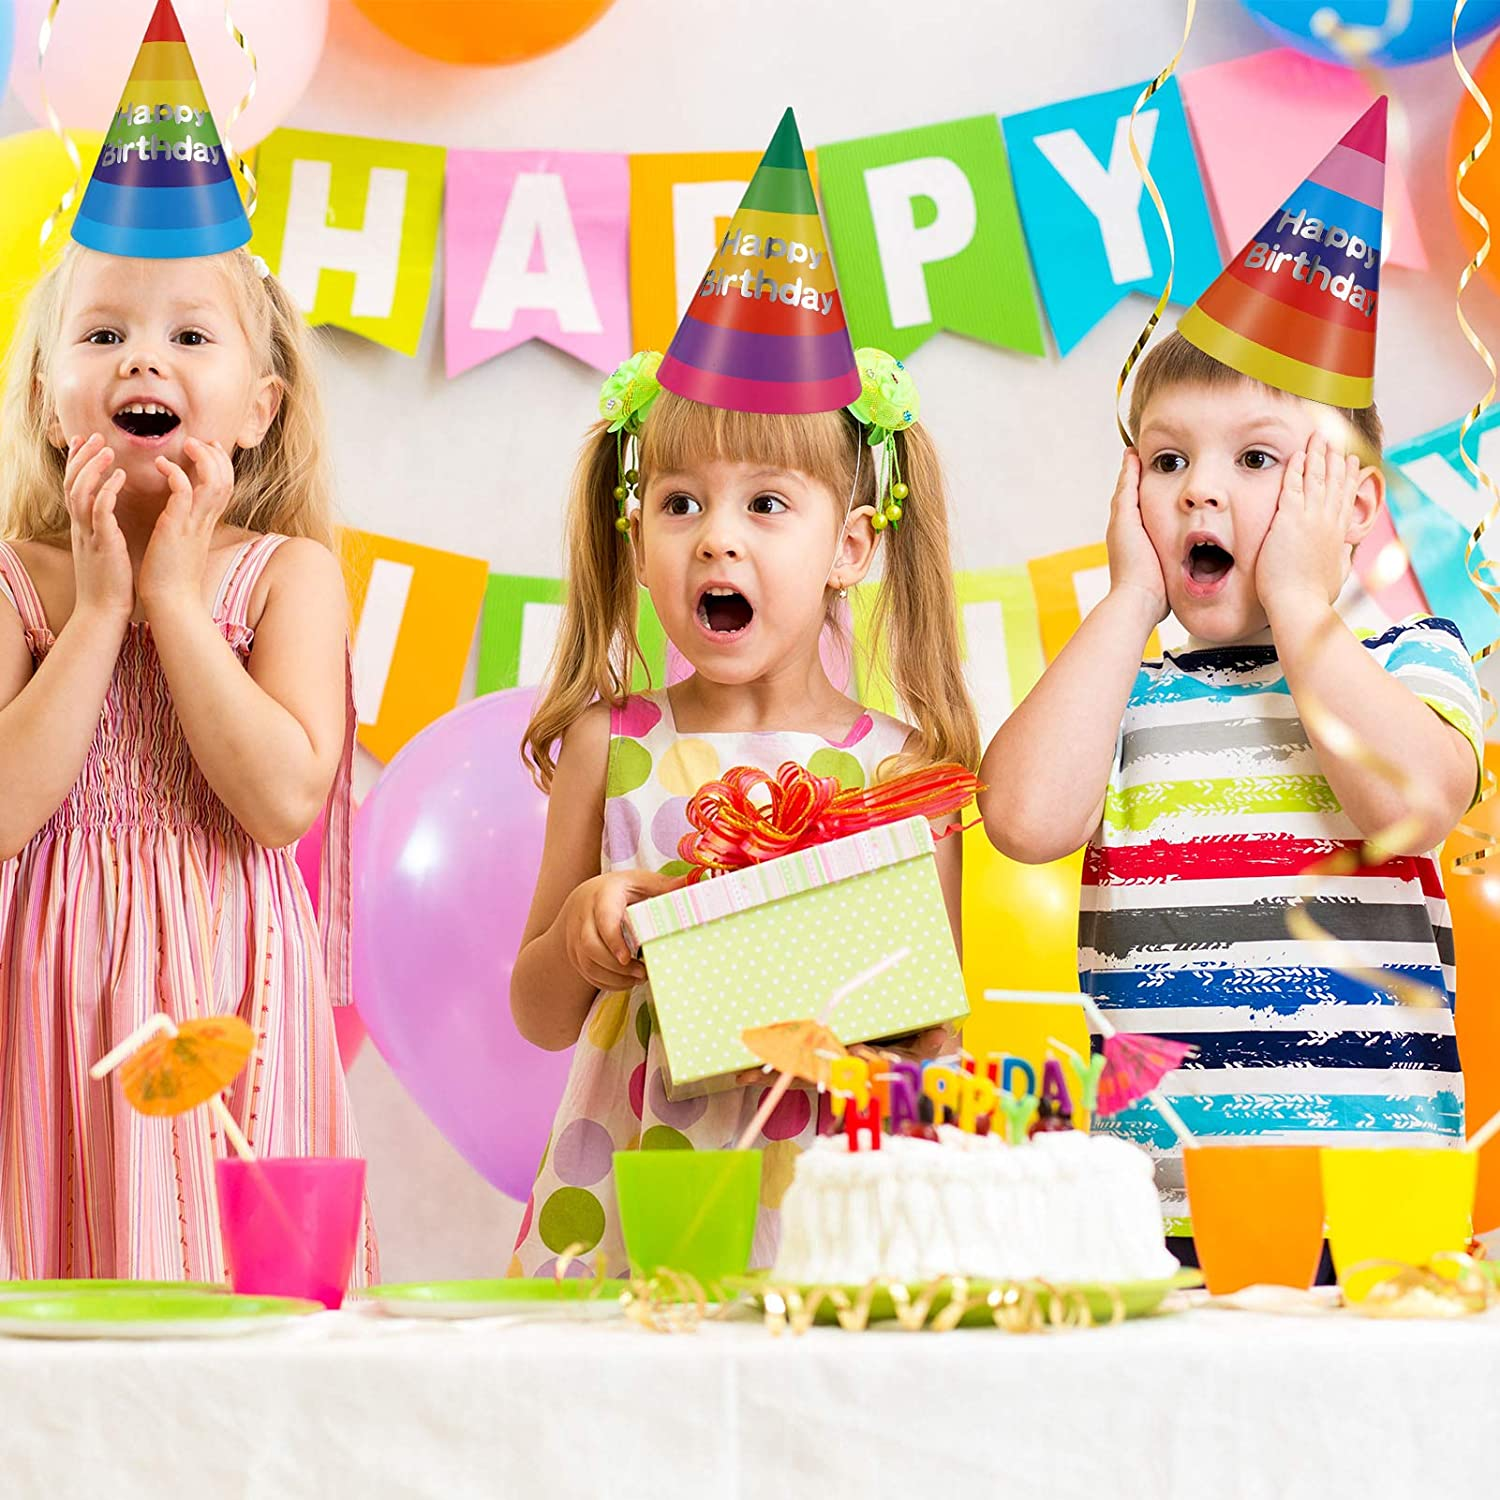 Auxsoul Happy Birthday Banner with Colorful Birthday Party Hats Birthday Decorations Banner with 10 Birthday Paper Hats Rainbow Birthday Decorations for Children Baby Birthday Supplies